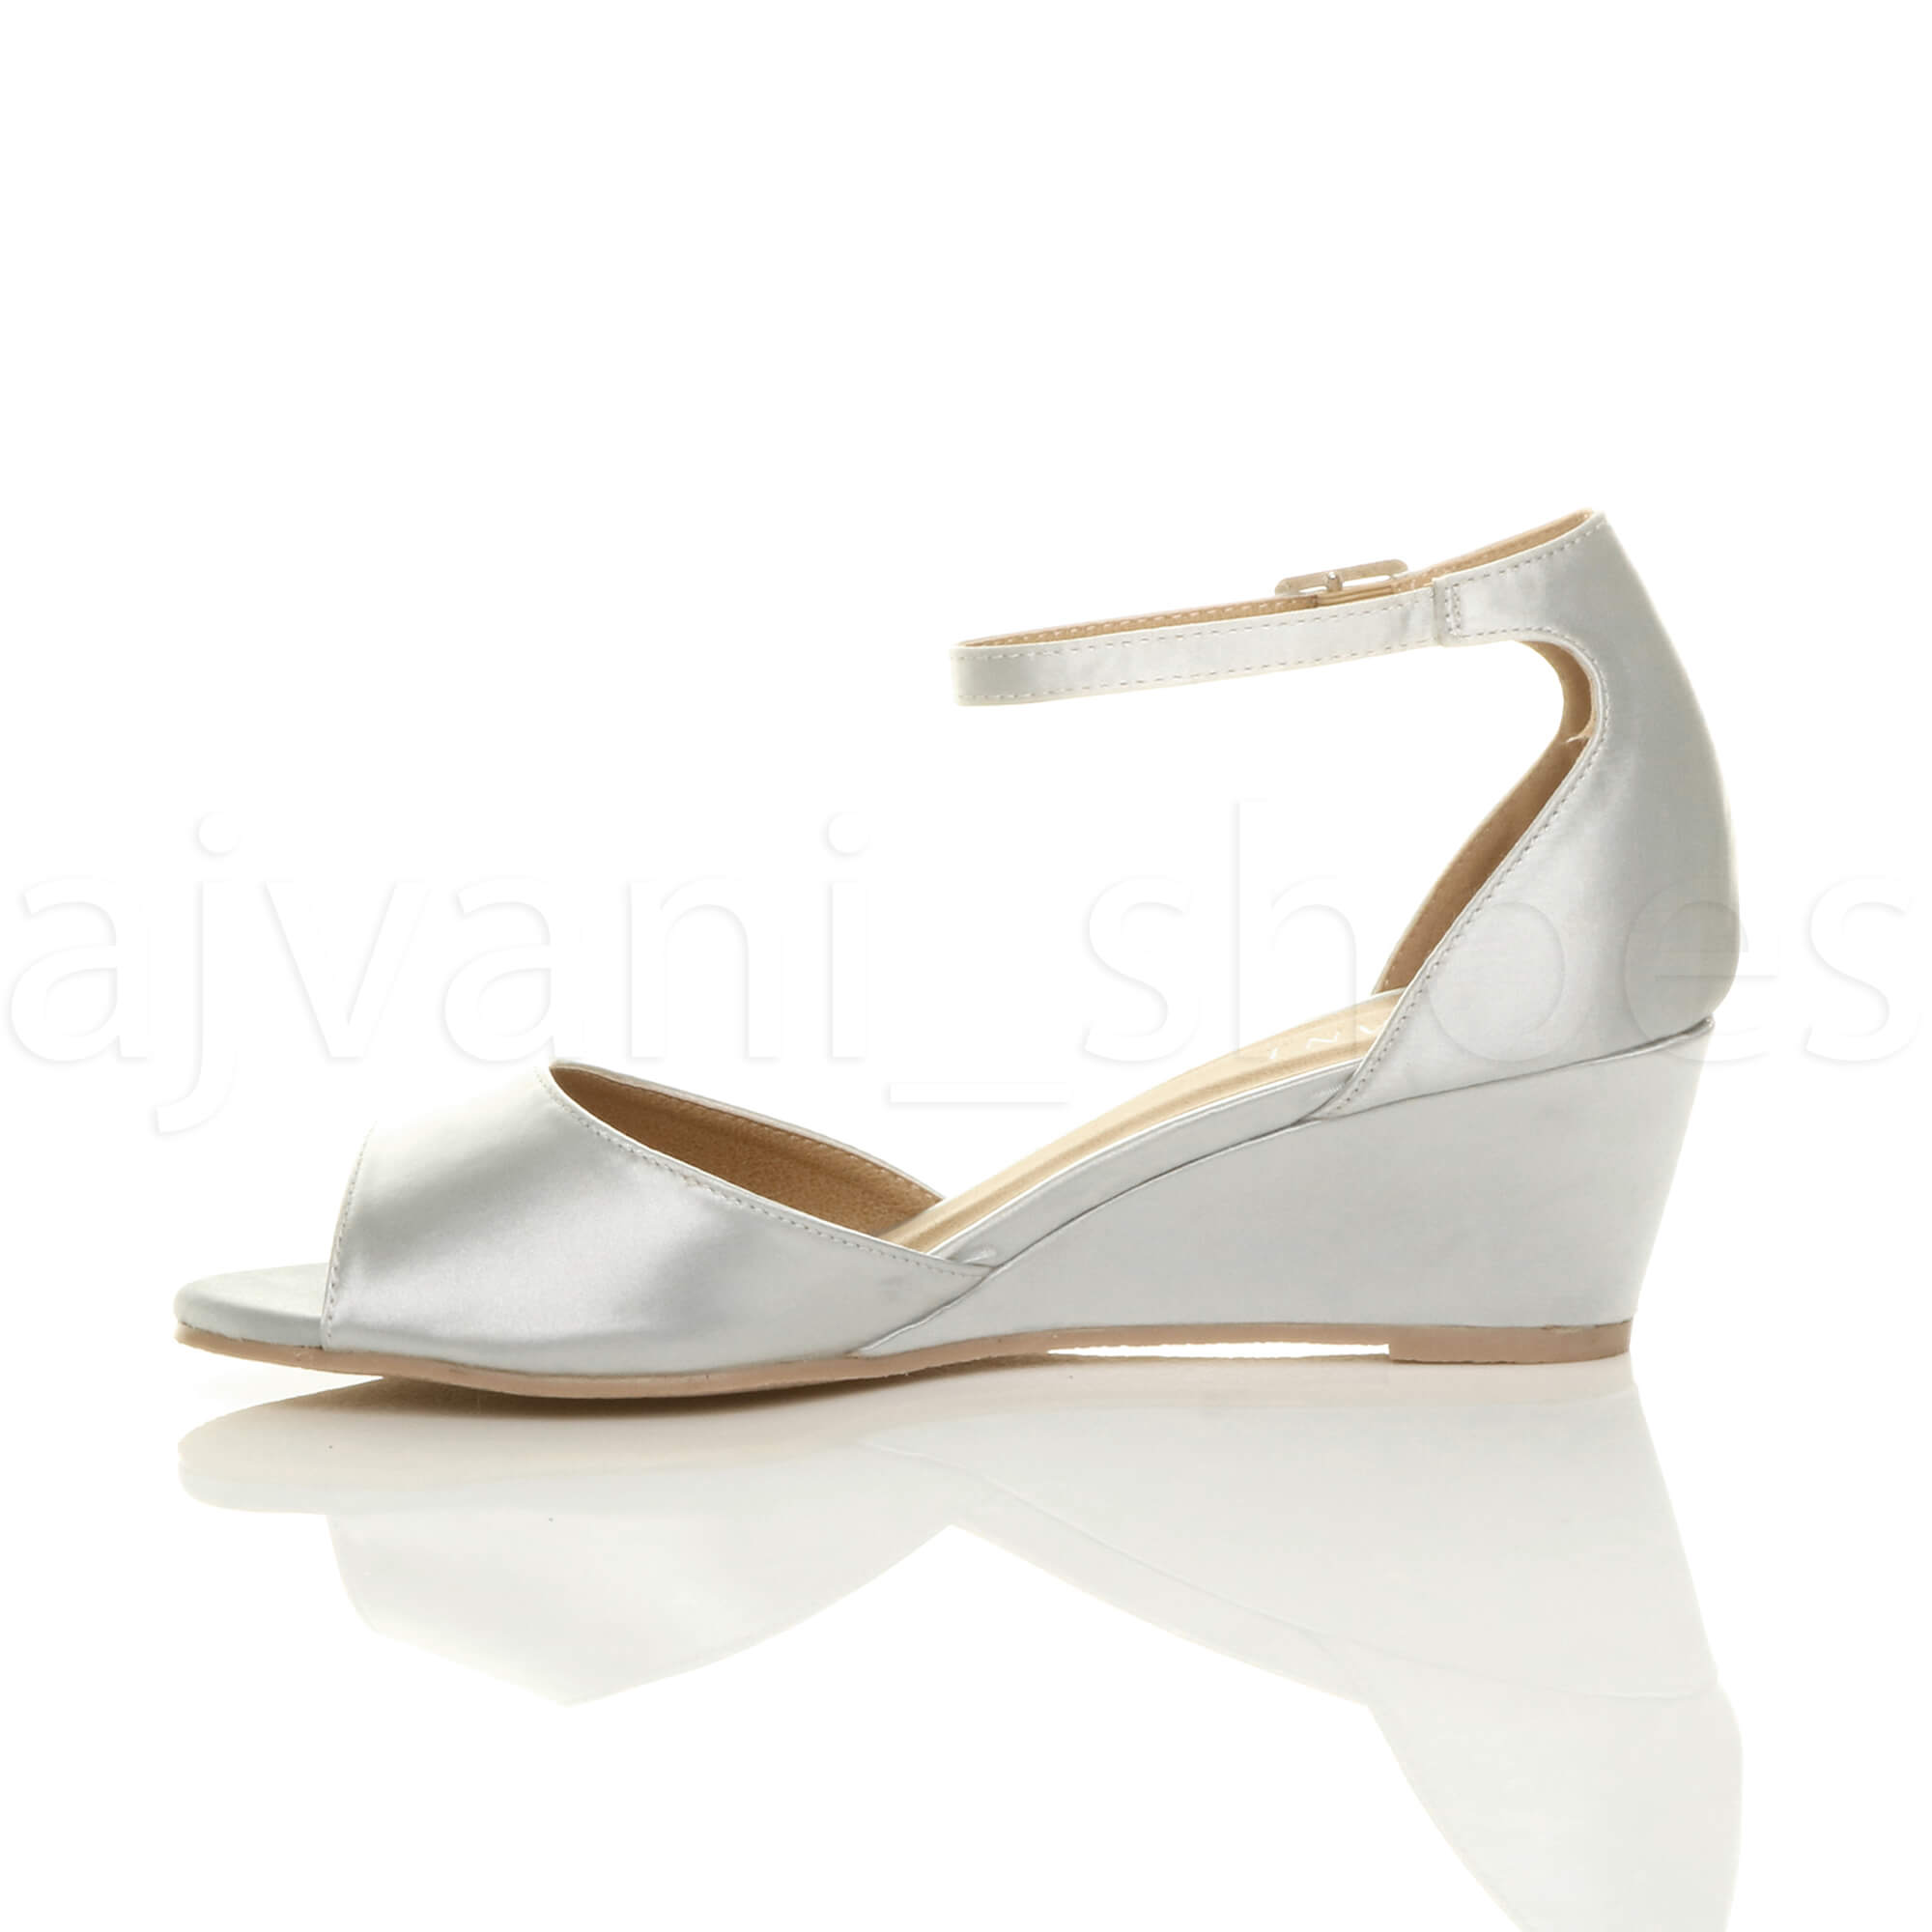 WOMENS-LADIES-LOW-MID-WEDGE-HEEL-ANKLE-STRAP-SMART-CASUAL-EVENING-SANDALS-SIZE thumbnail 156